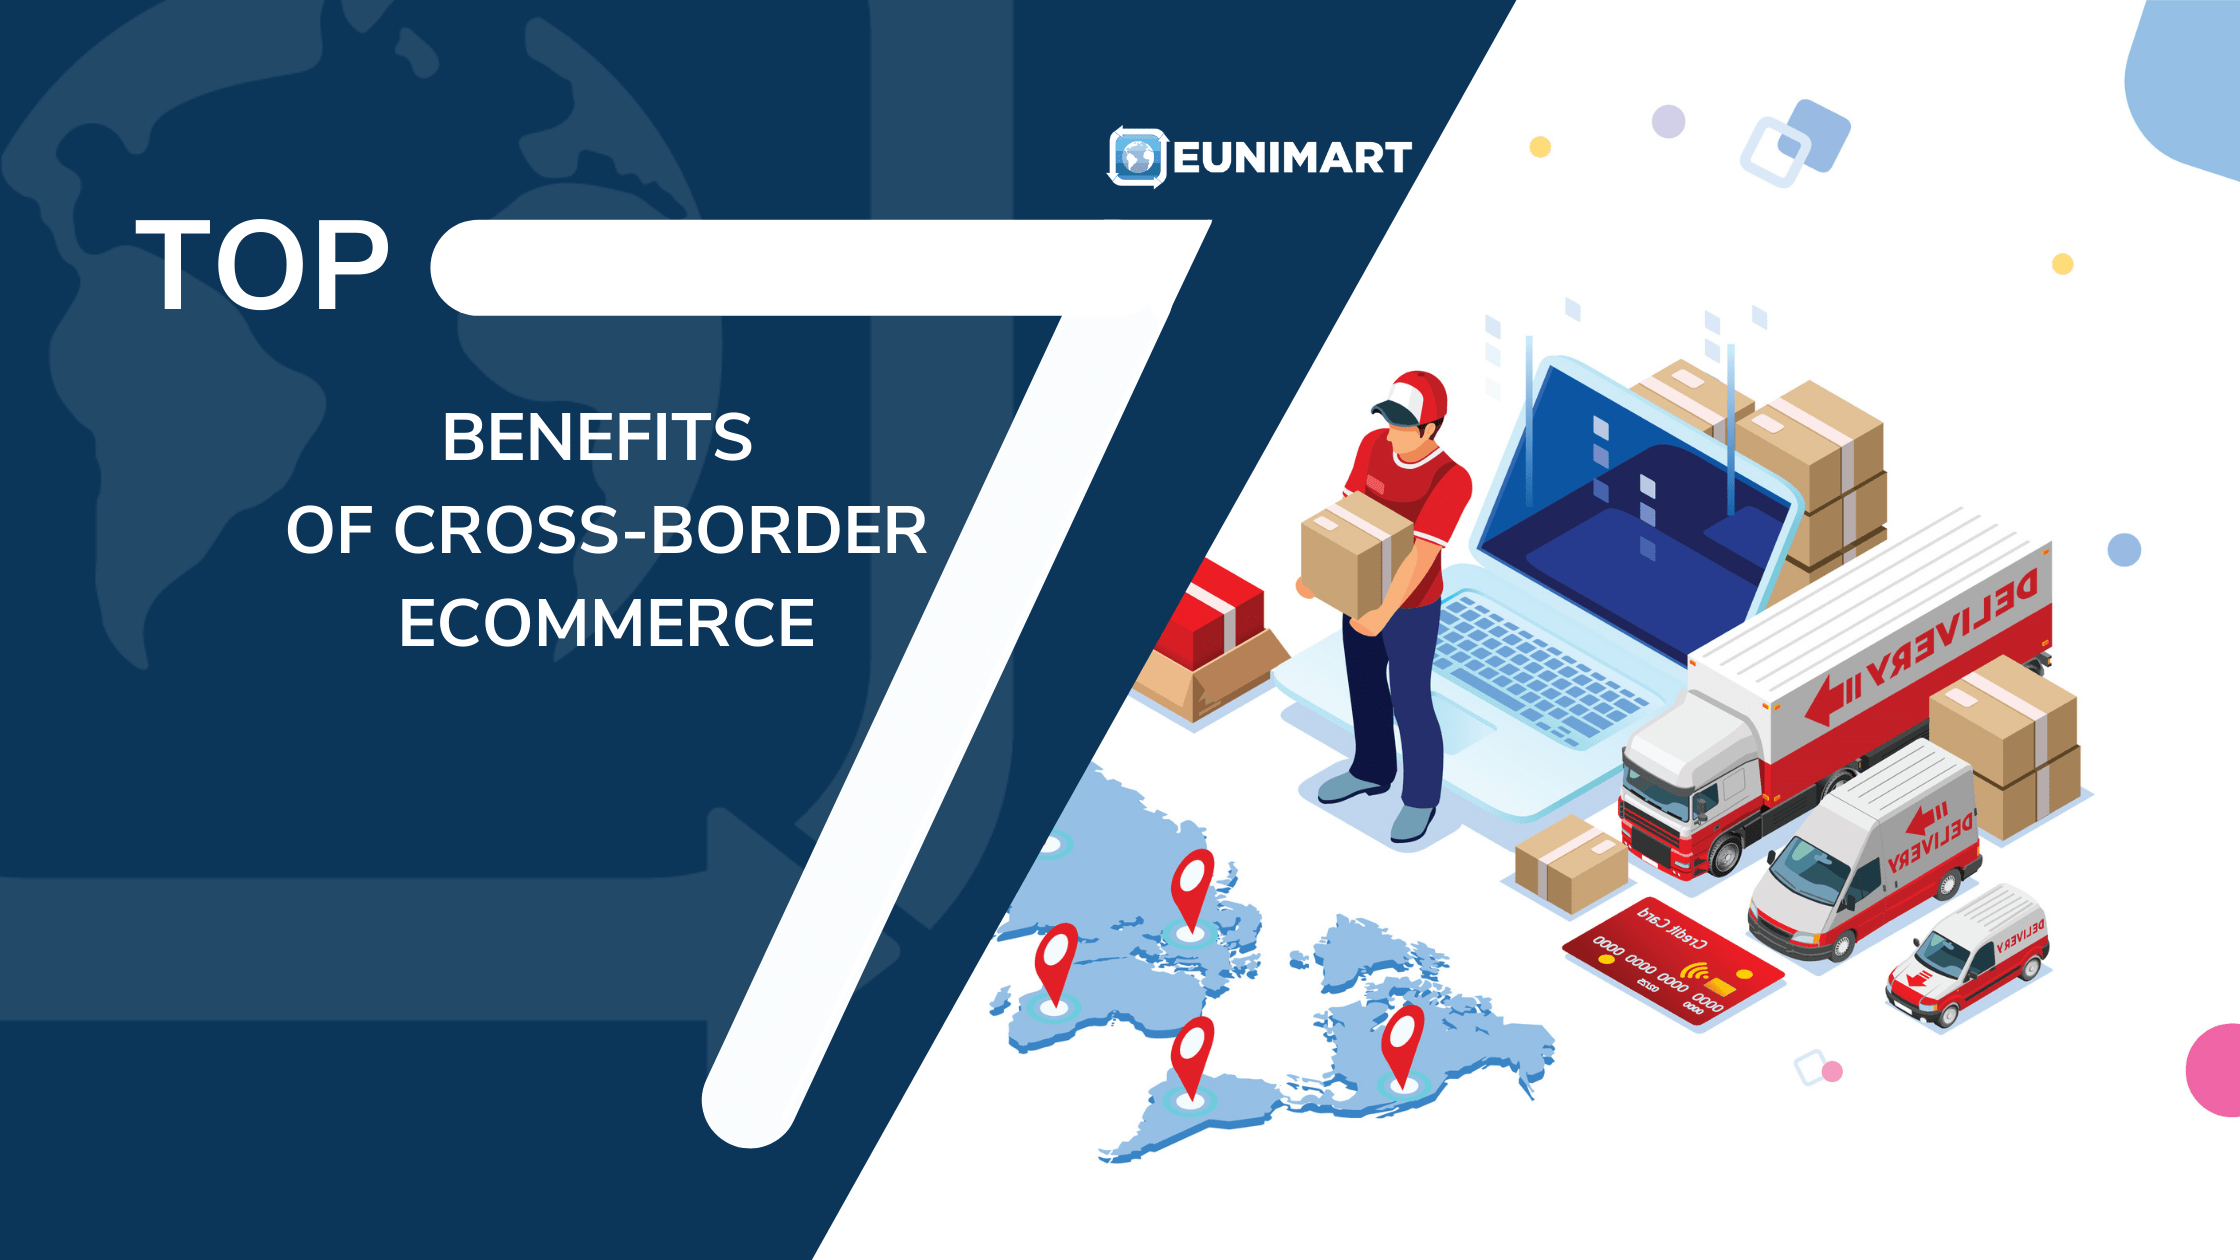 Find the top 7 benefits of cross-border Ecommerce